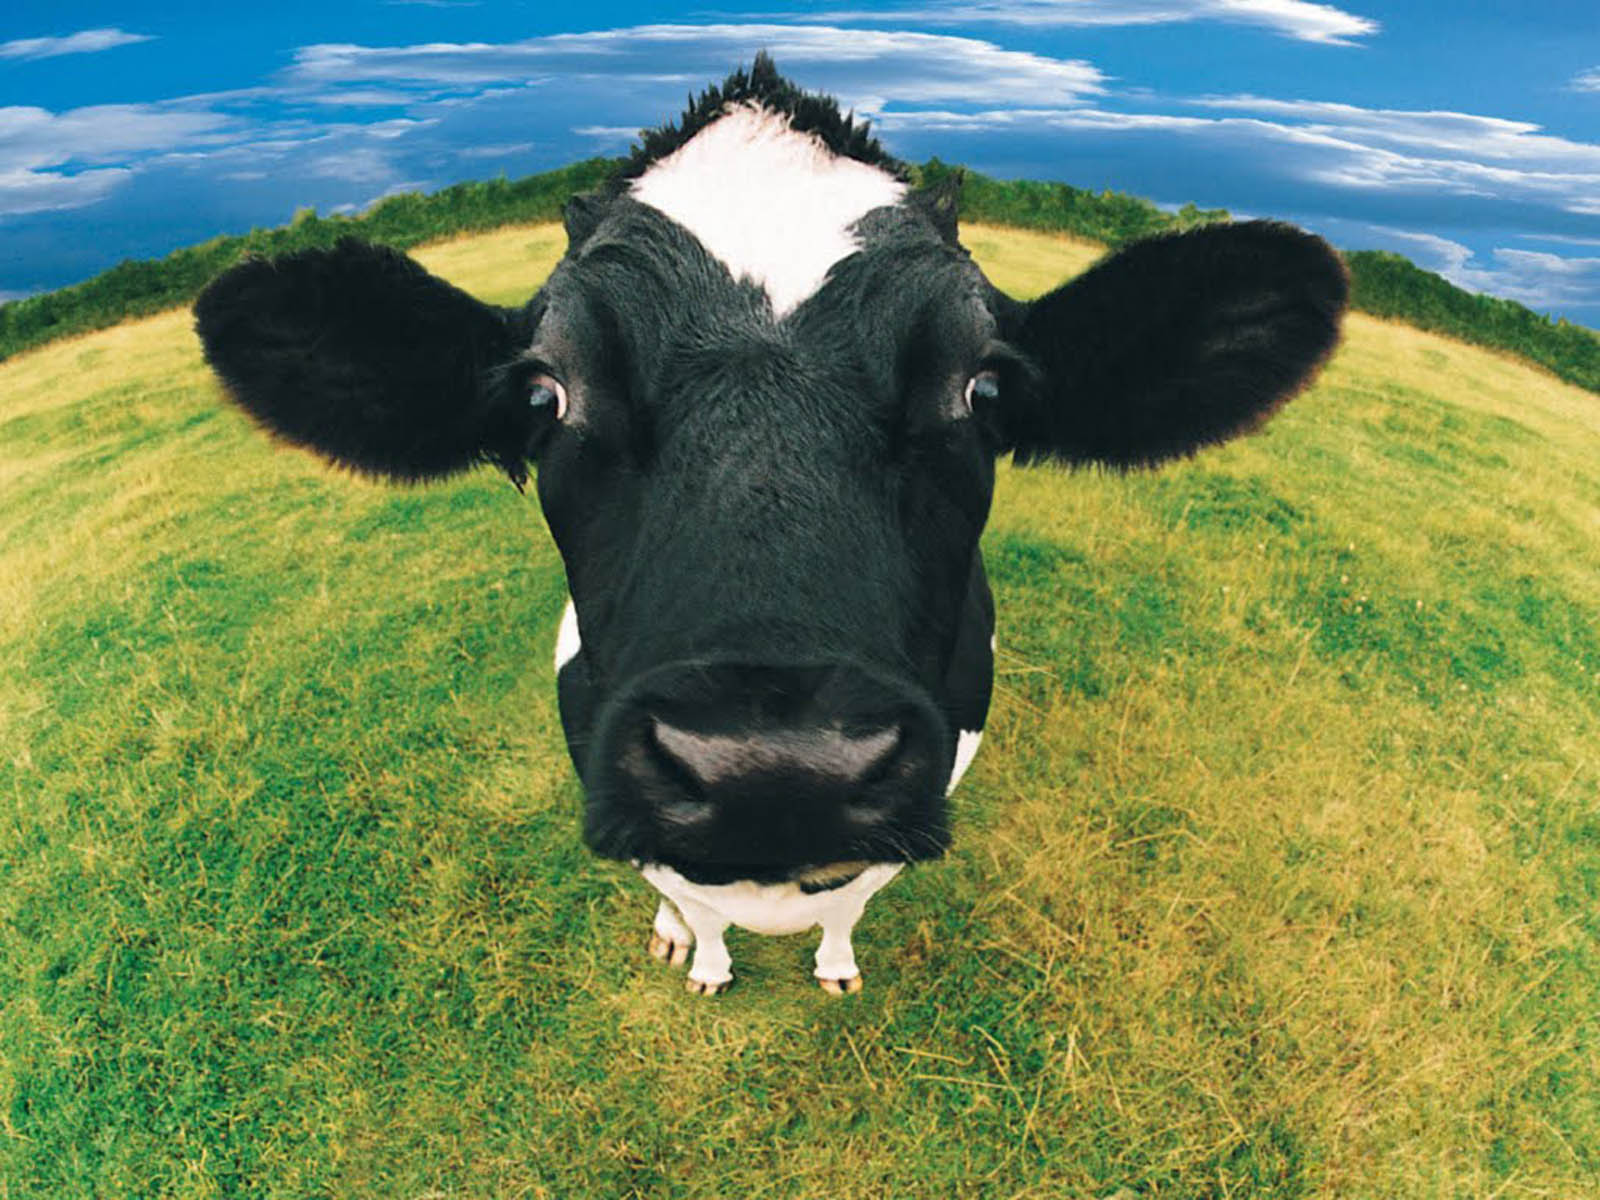 Farm Animals Wallpapers Images Photos Pictures and Backgrounds for 1600x1200